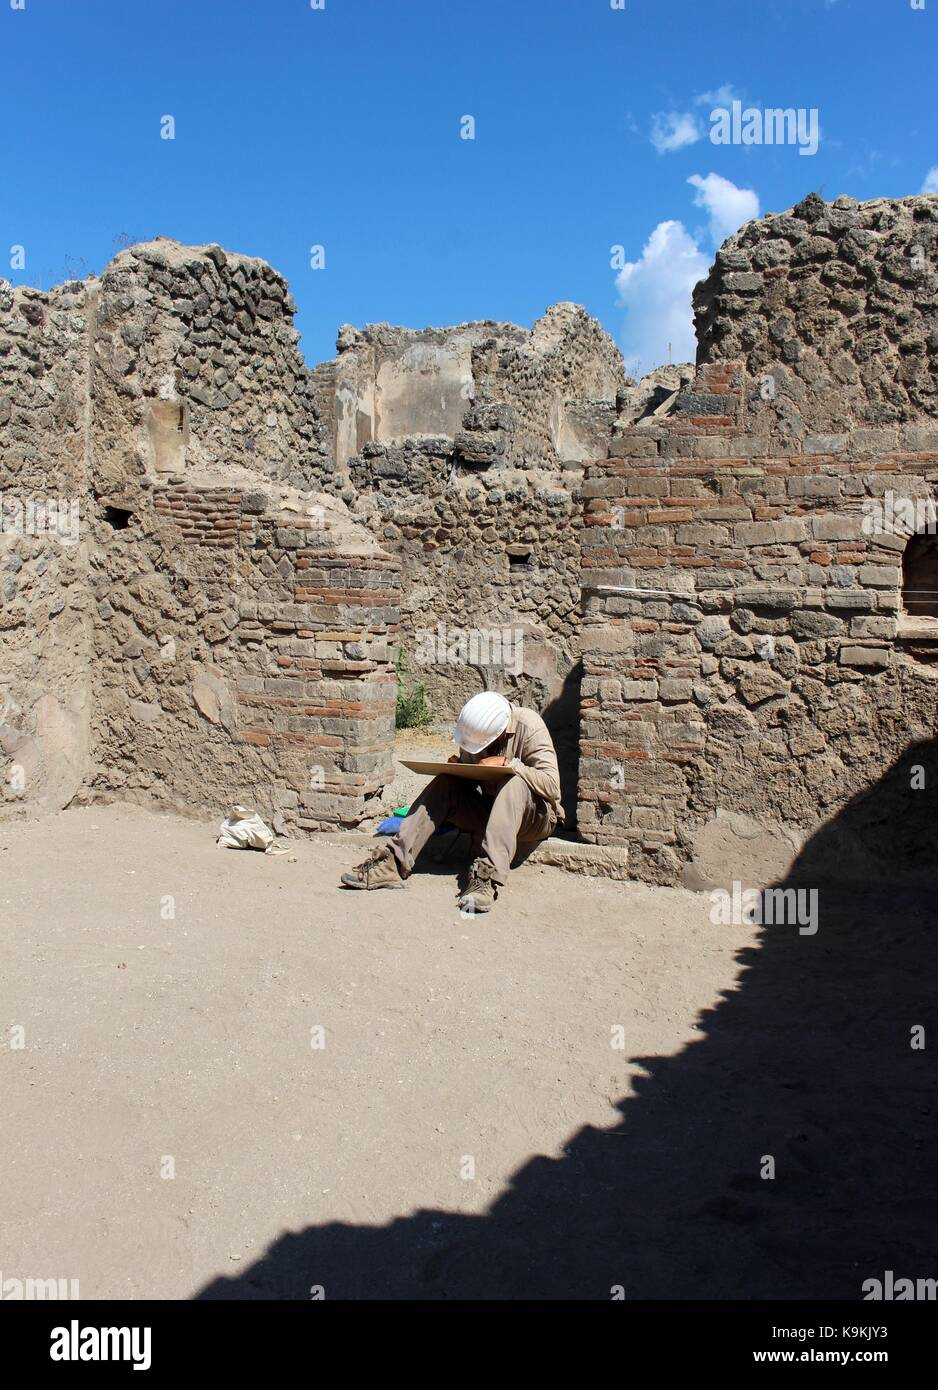 The archaeological remains of Pompeii demonstrates nature's ability to destroy and preserve. Stock Photo